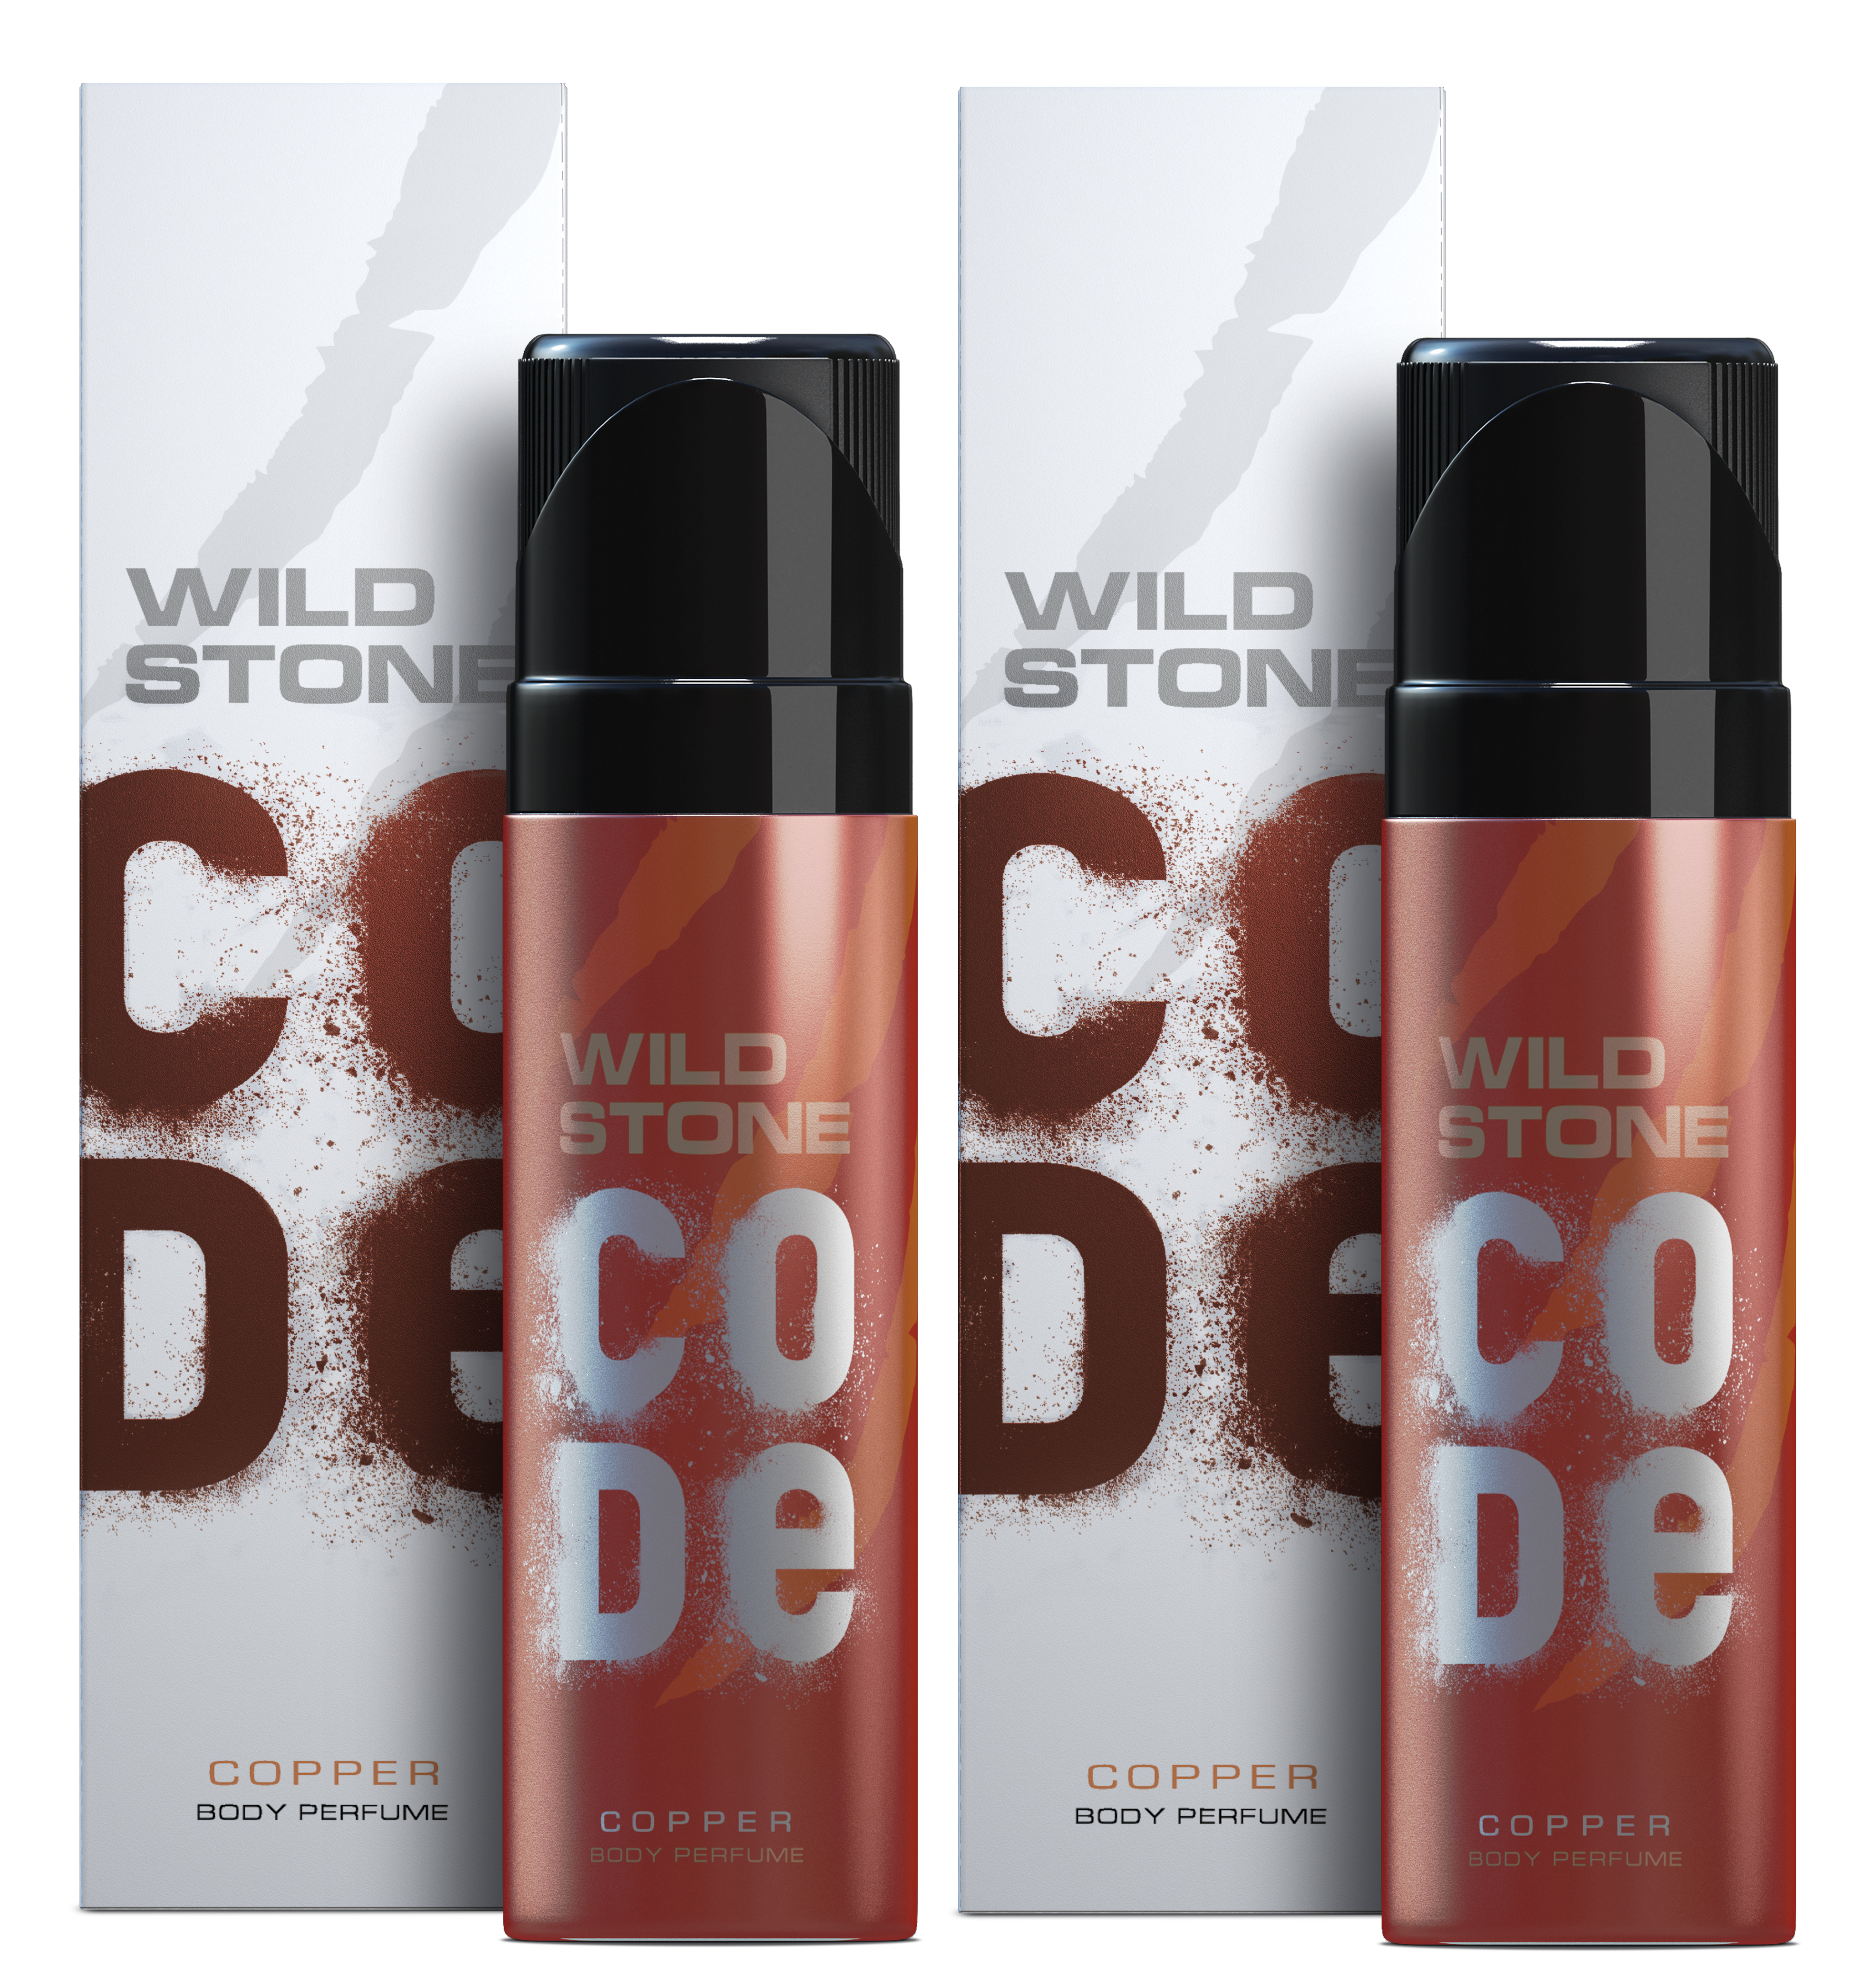 Wild Stone Code Copper Body Perfume - 120 ml each (Pack of 2)